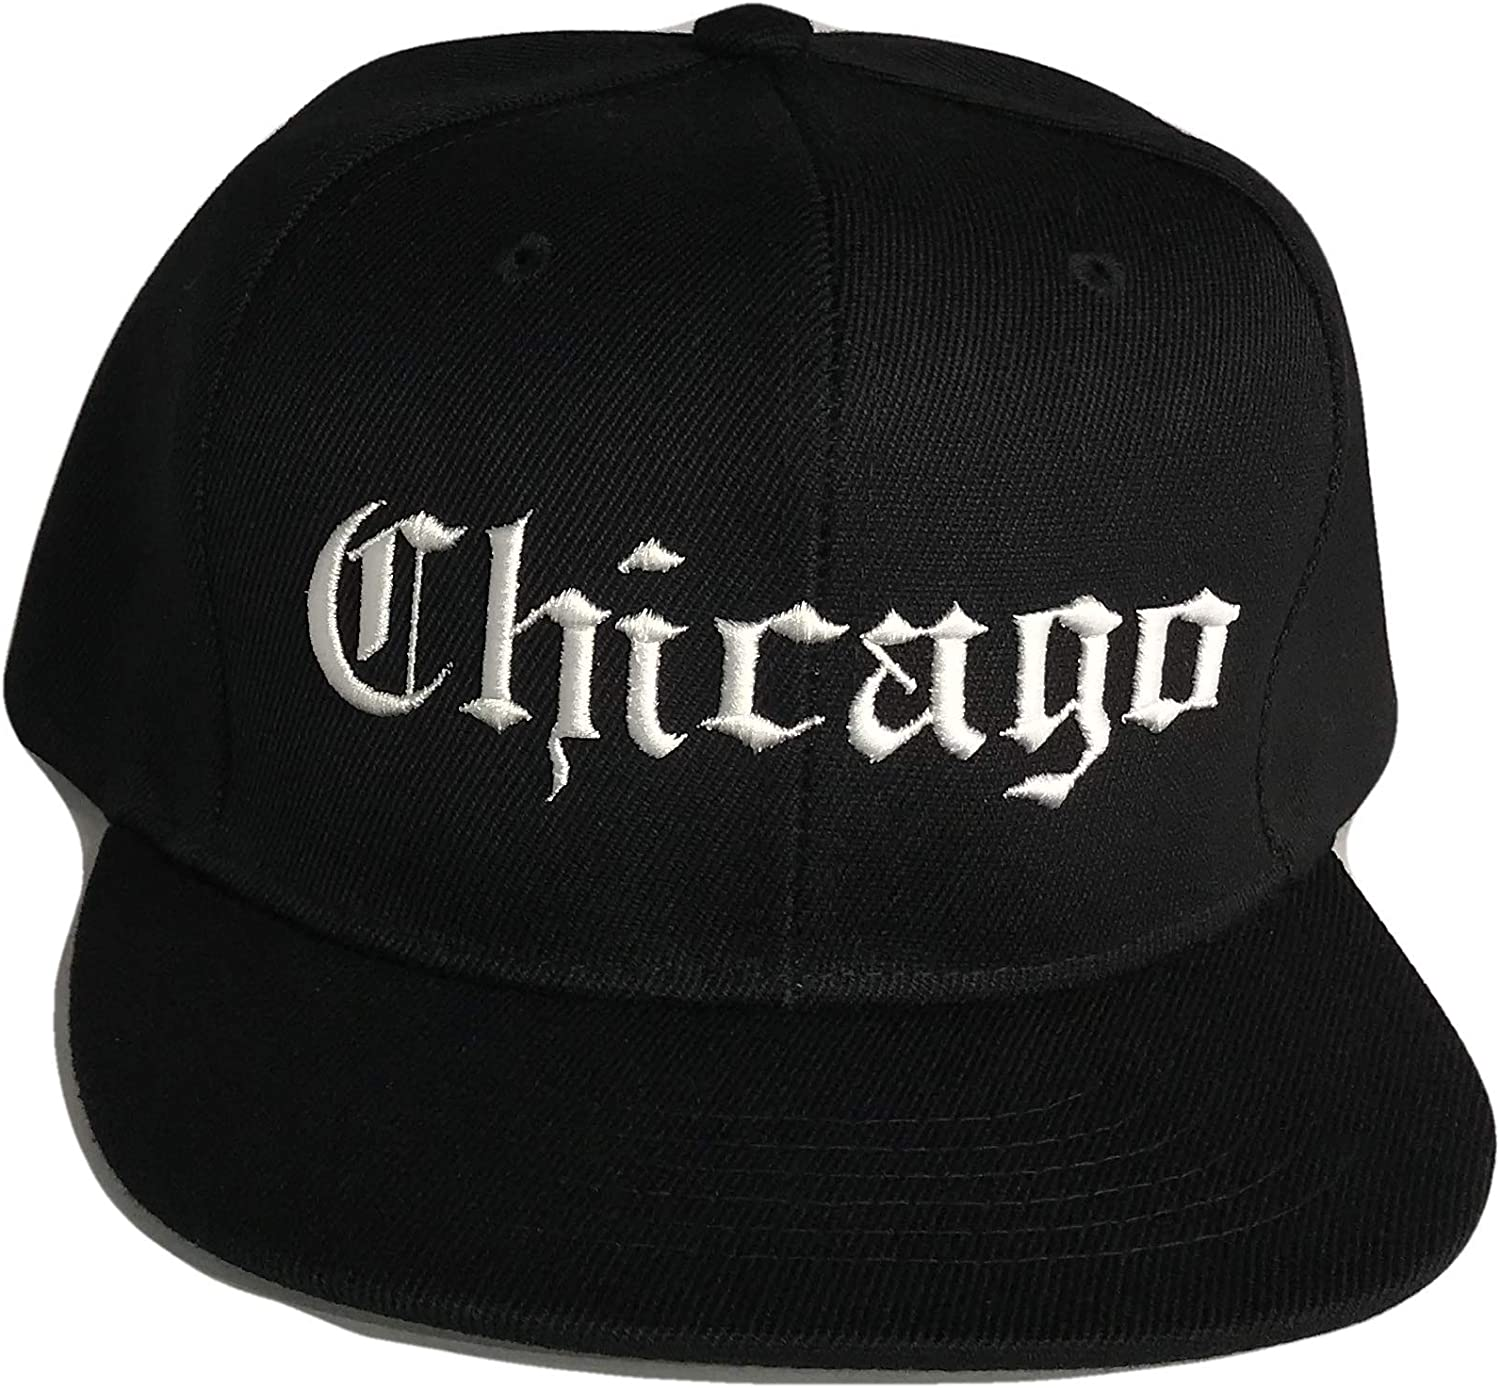 The Hat Shoppe Chicago Old English Flat Bill Snapback Baseball Cap (One Size, Black/White)